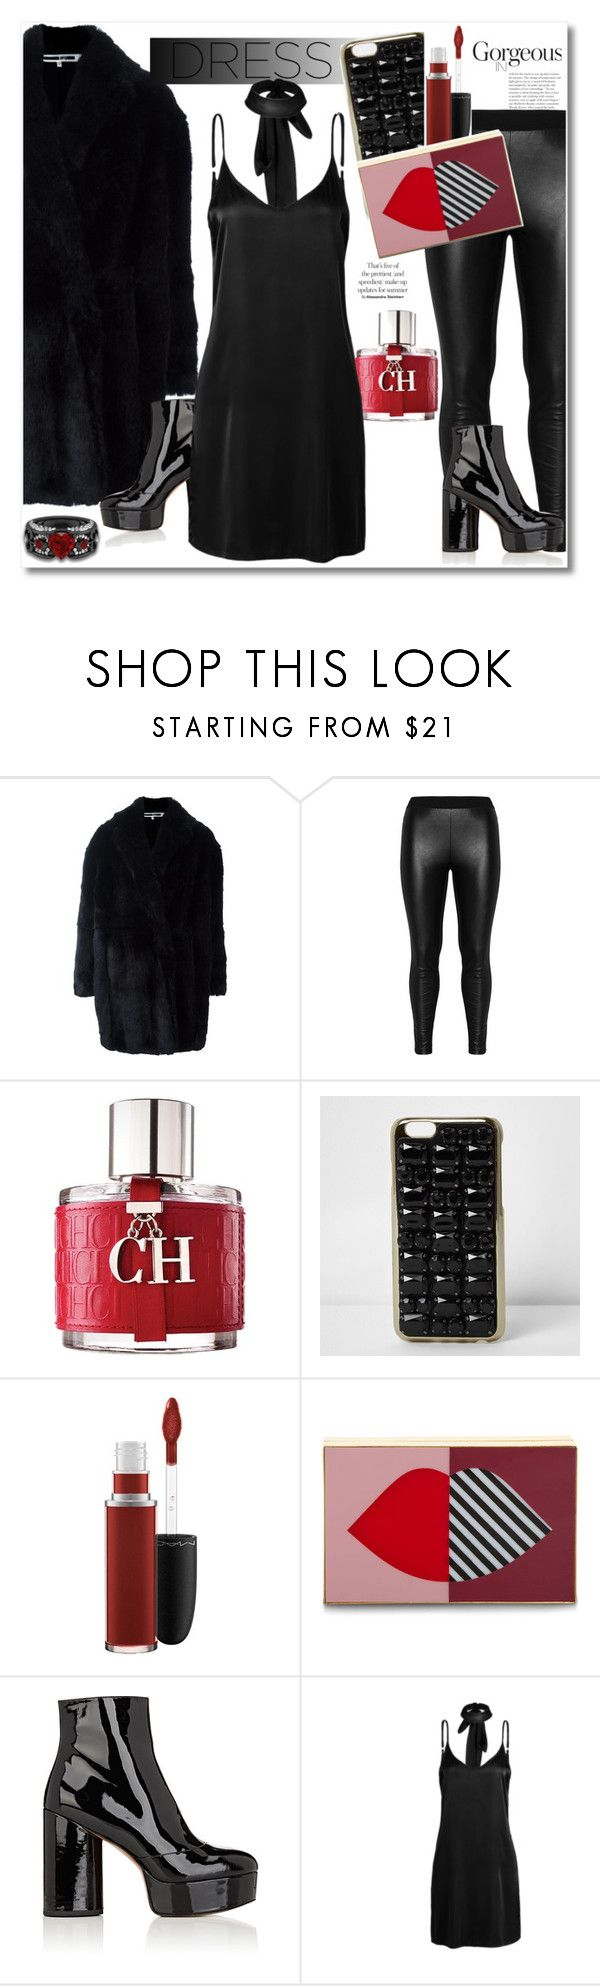 """""""Get the look Chocker dress"""" by vkmd ❤ liked on Polyvore featuring Alexander McQueen, Zizzi, Carolina Herrera, River Island, MAC Cosmetics, Lulu Guinness, Marc Jacobs, WithChic and chokerdress"""